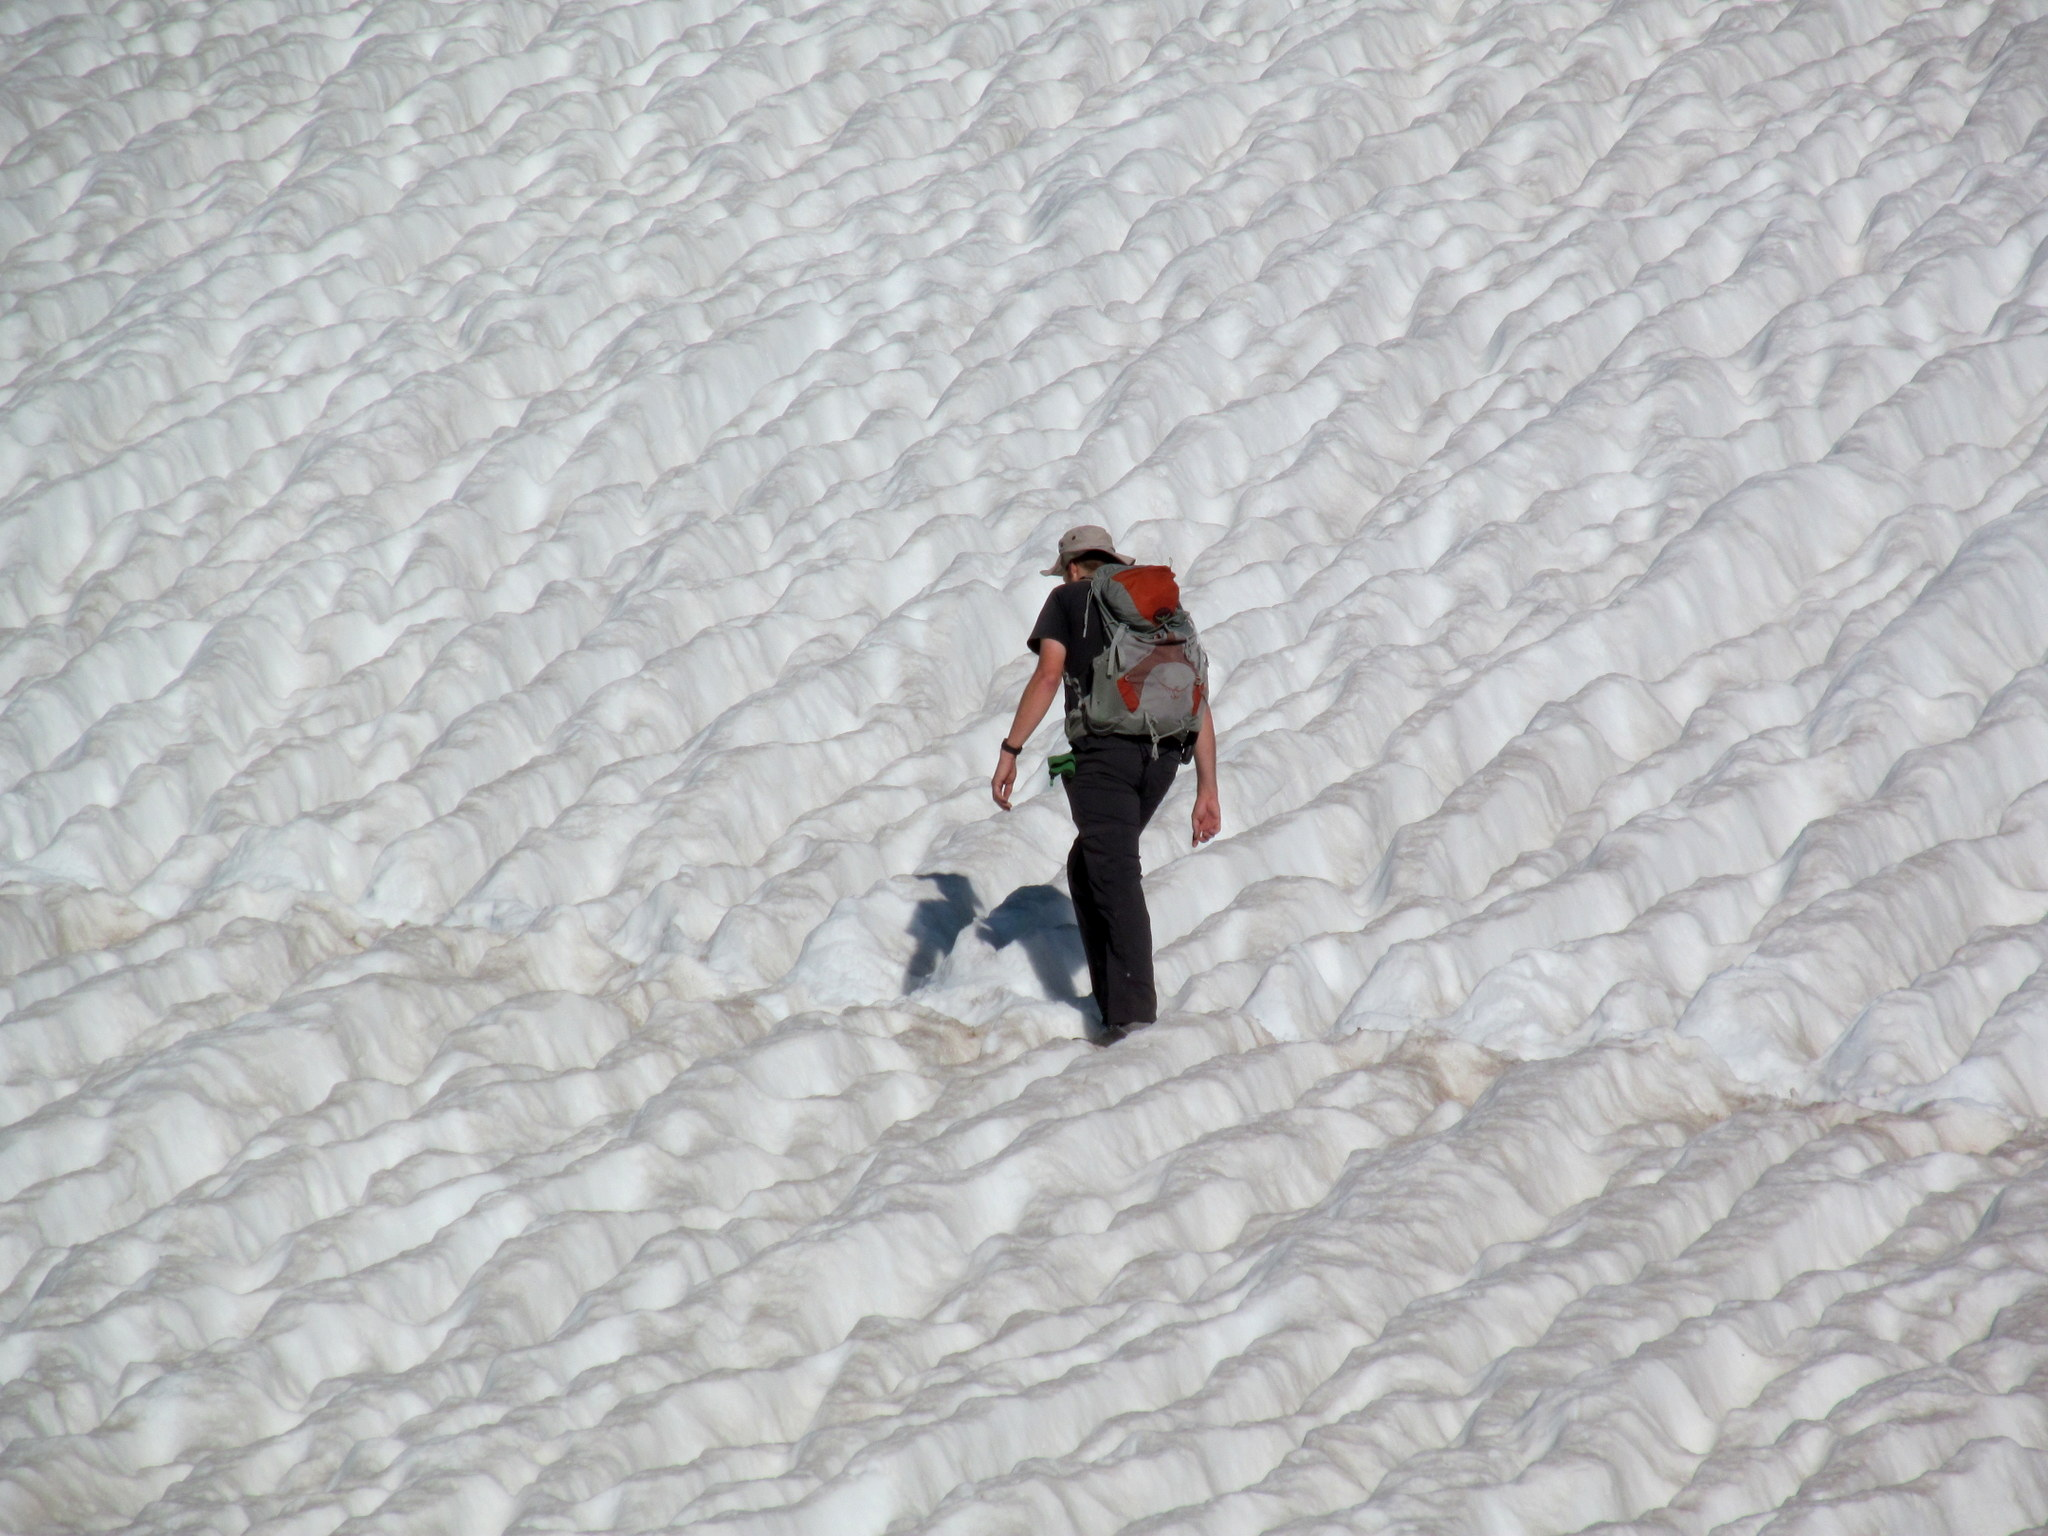 Photo: Crossing a snow field